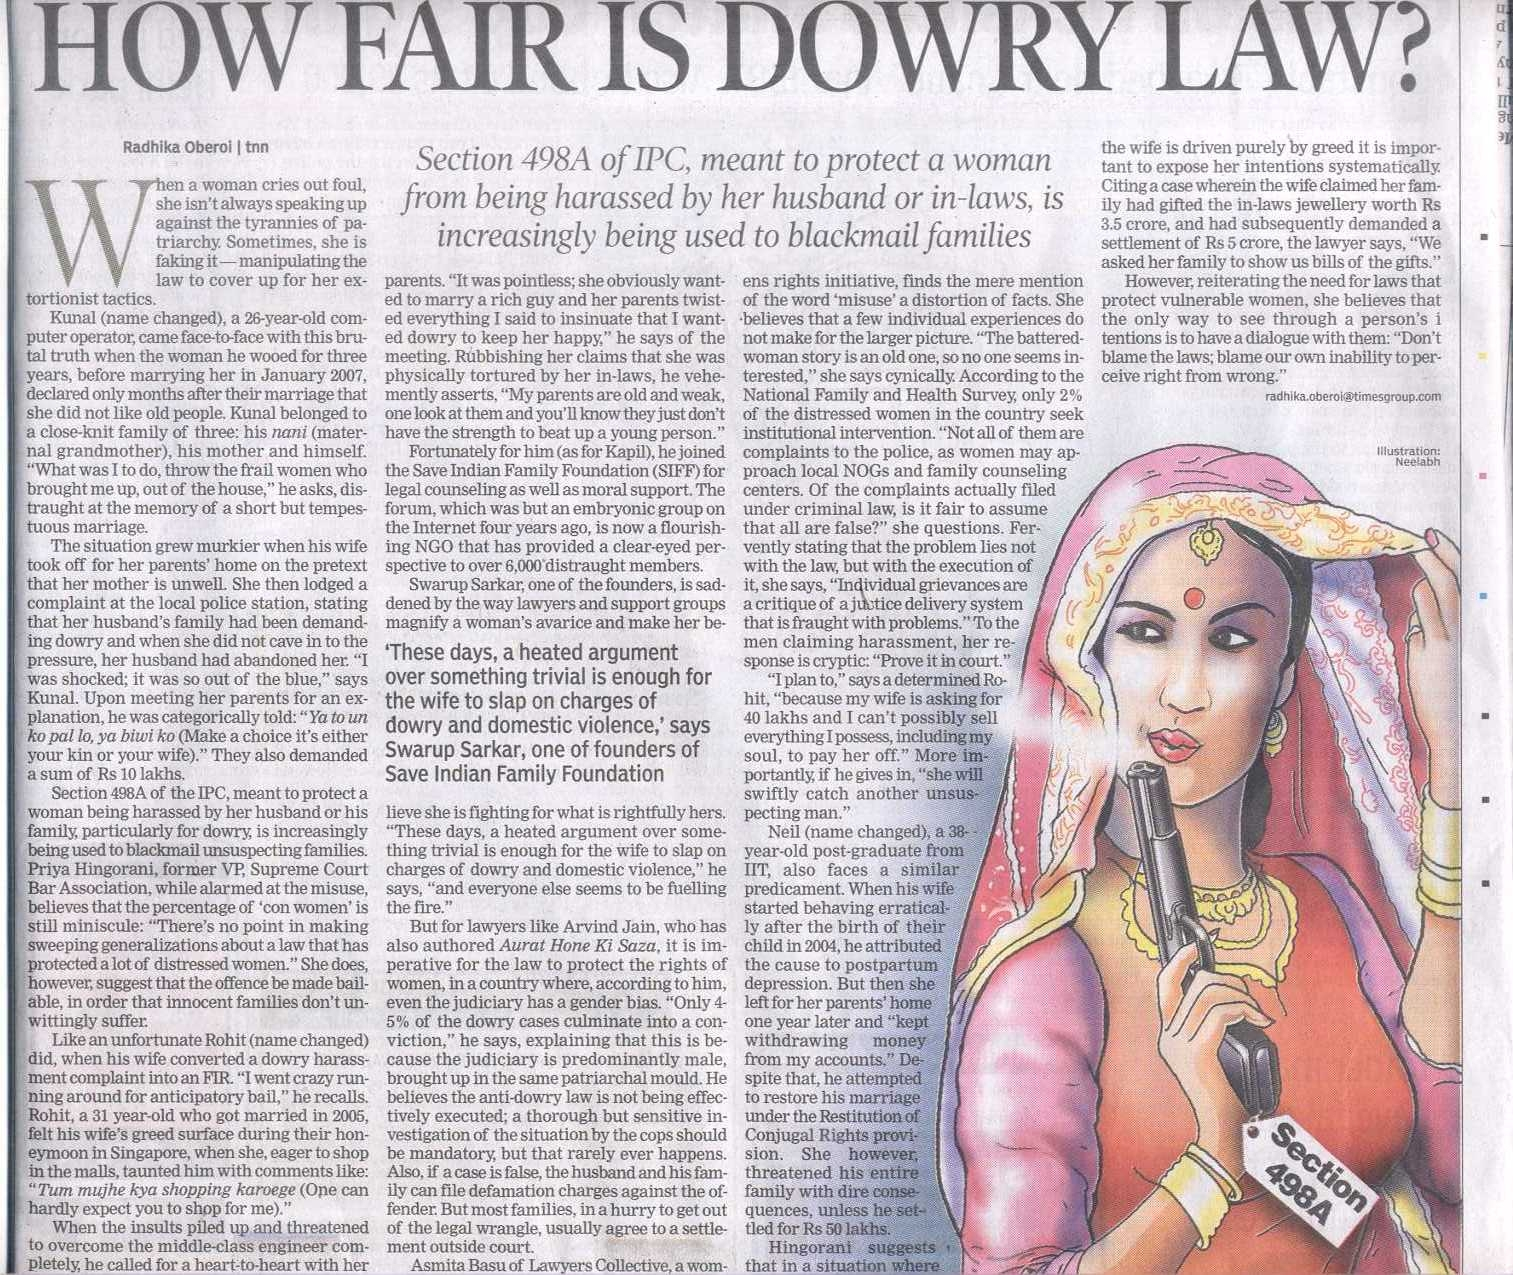 a review of women dowery deaths in india